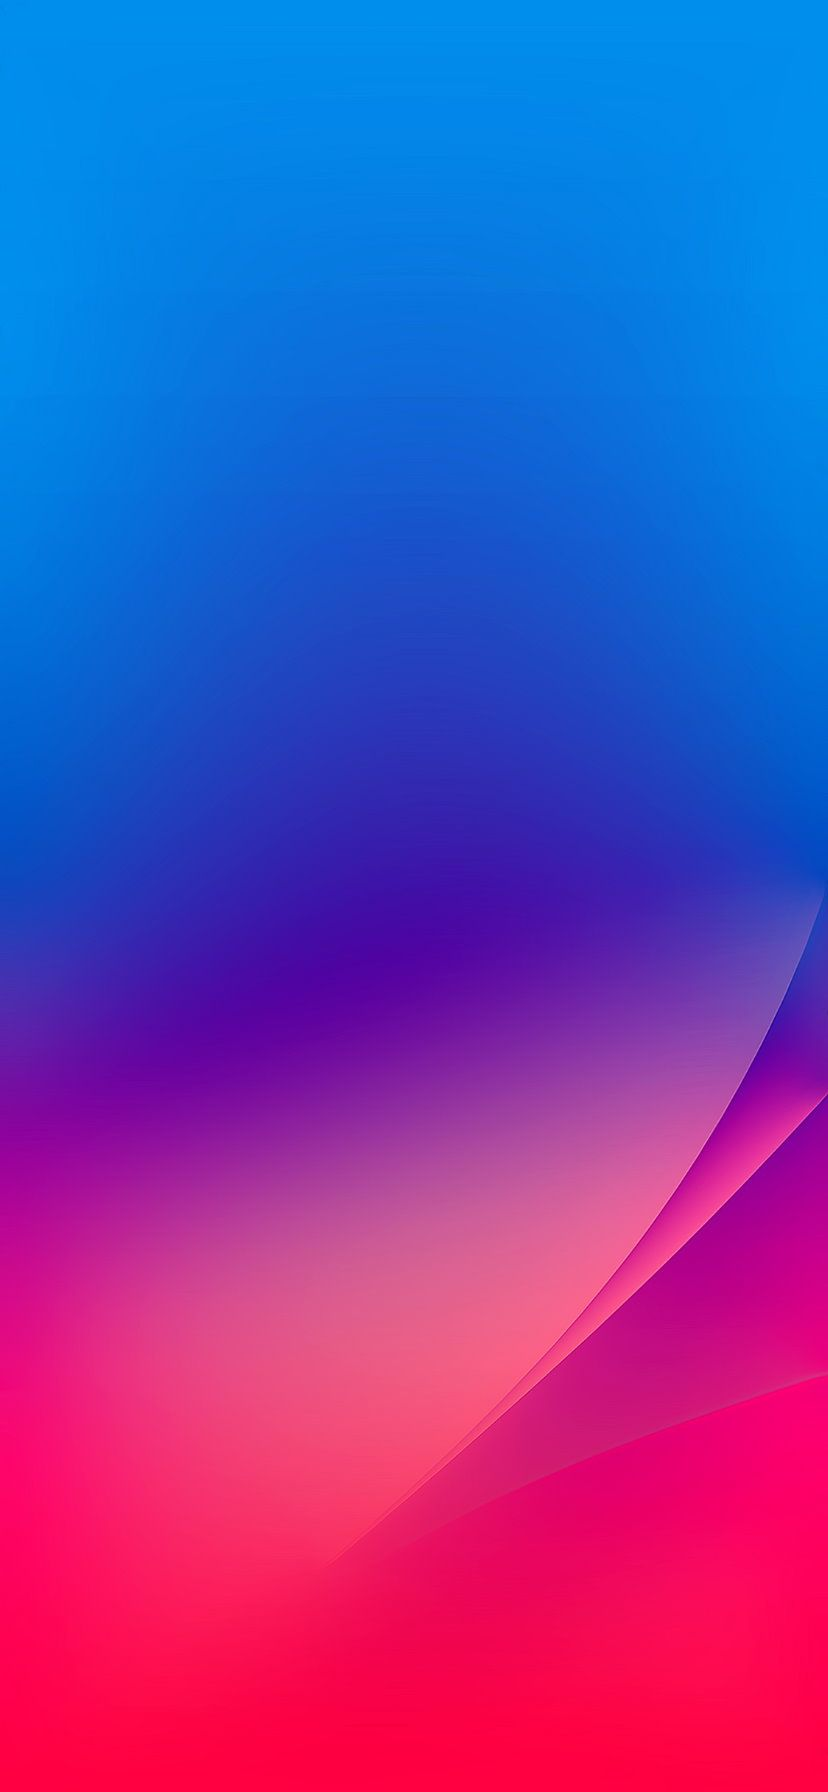 Wallpapers iPhone XR Pack 1 (avec images) Fond d'écran